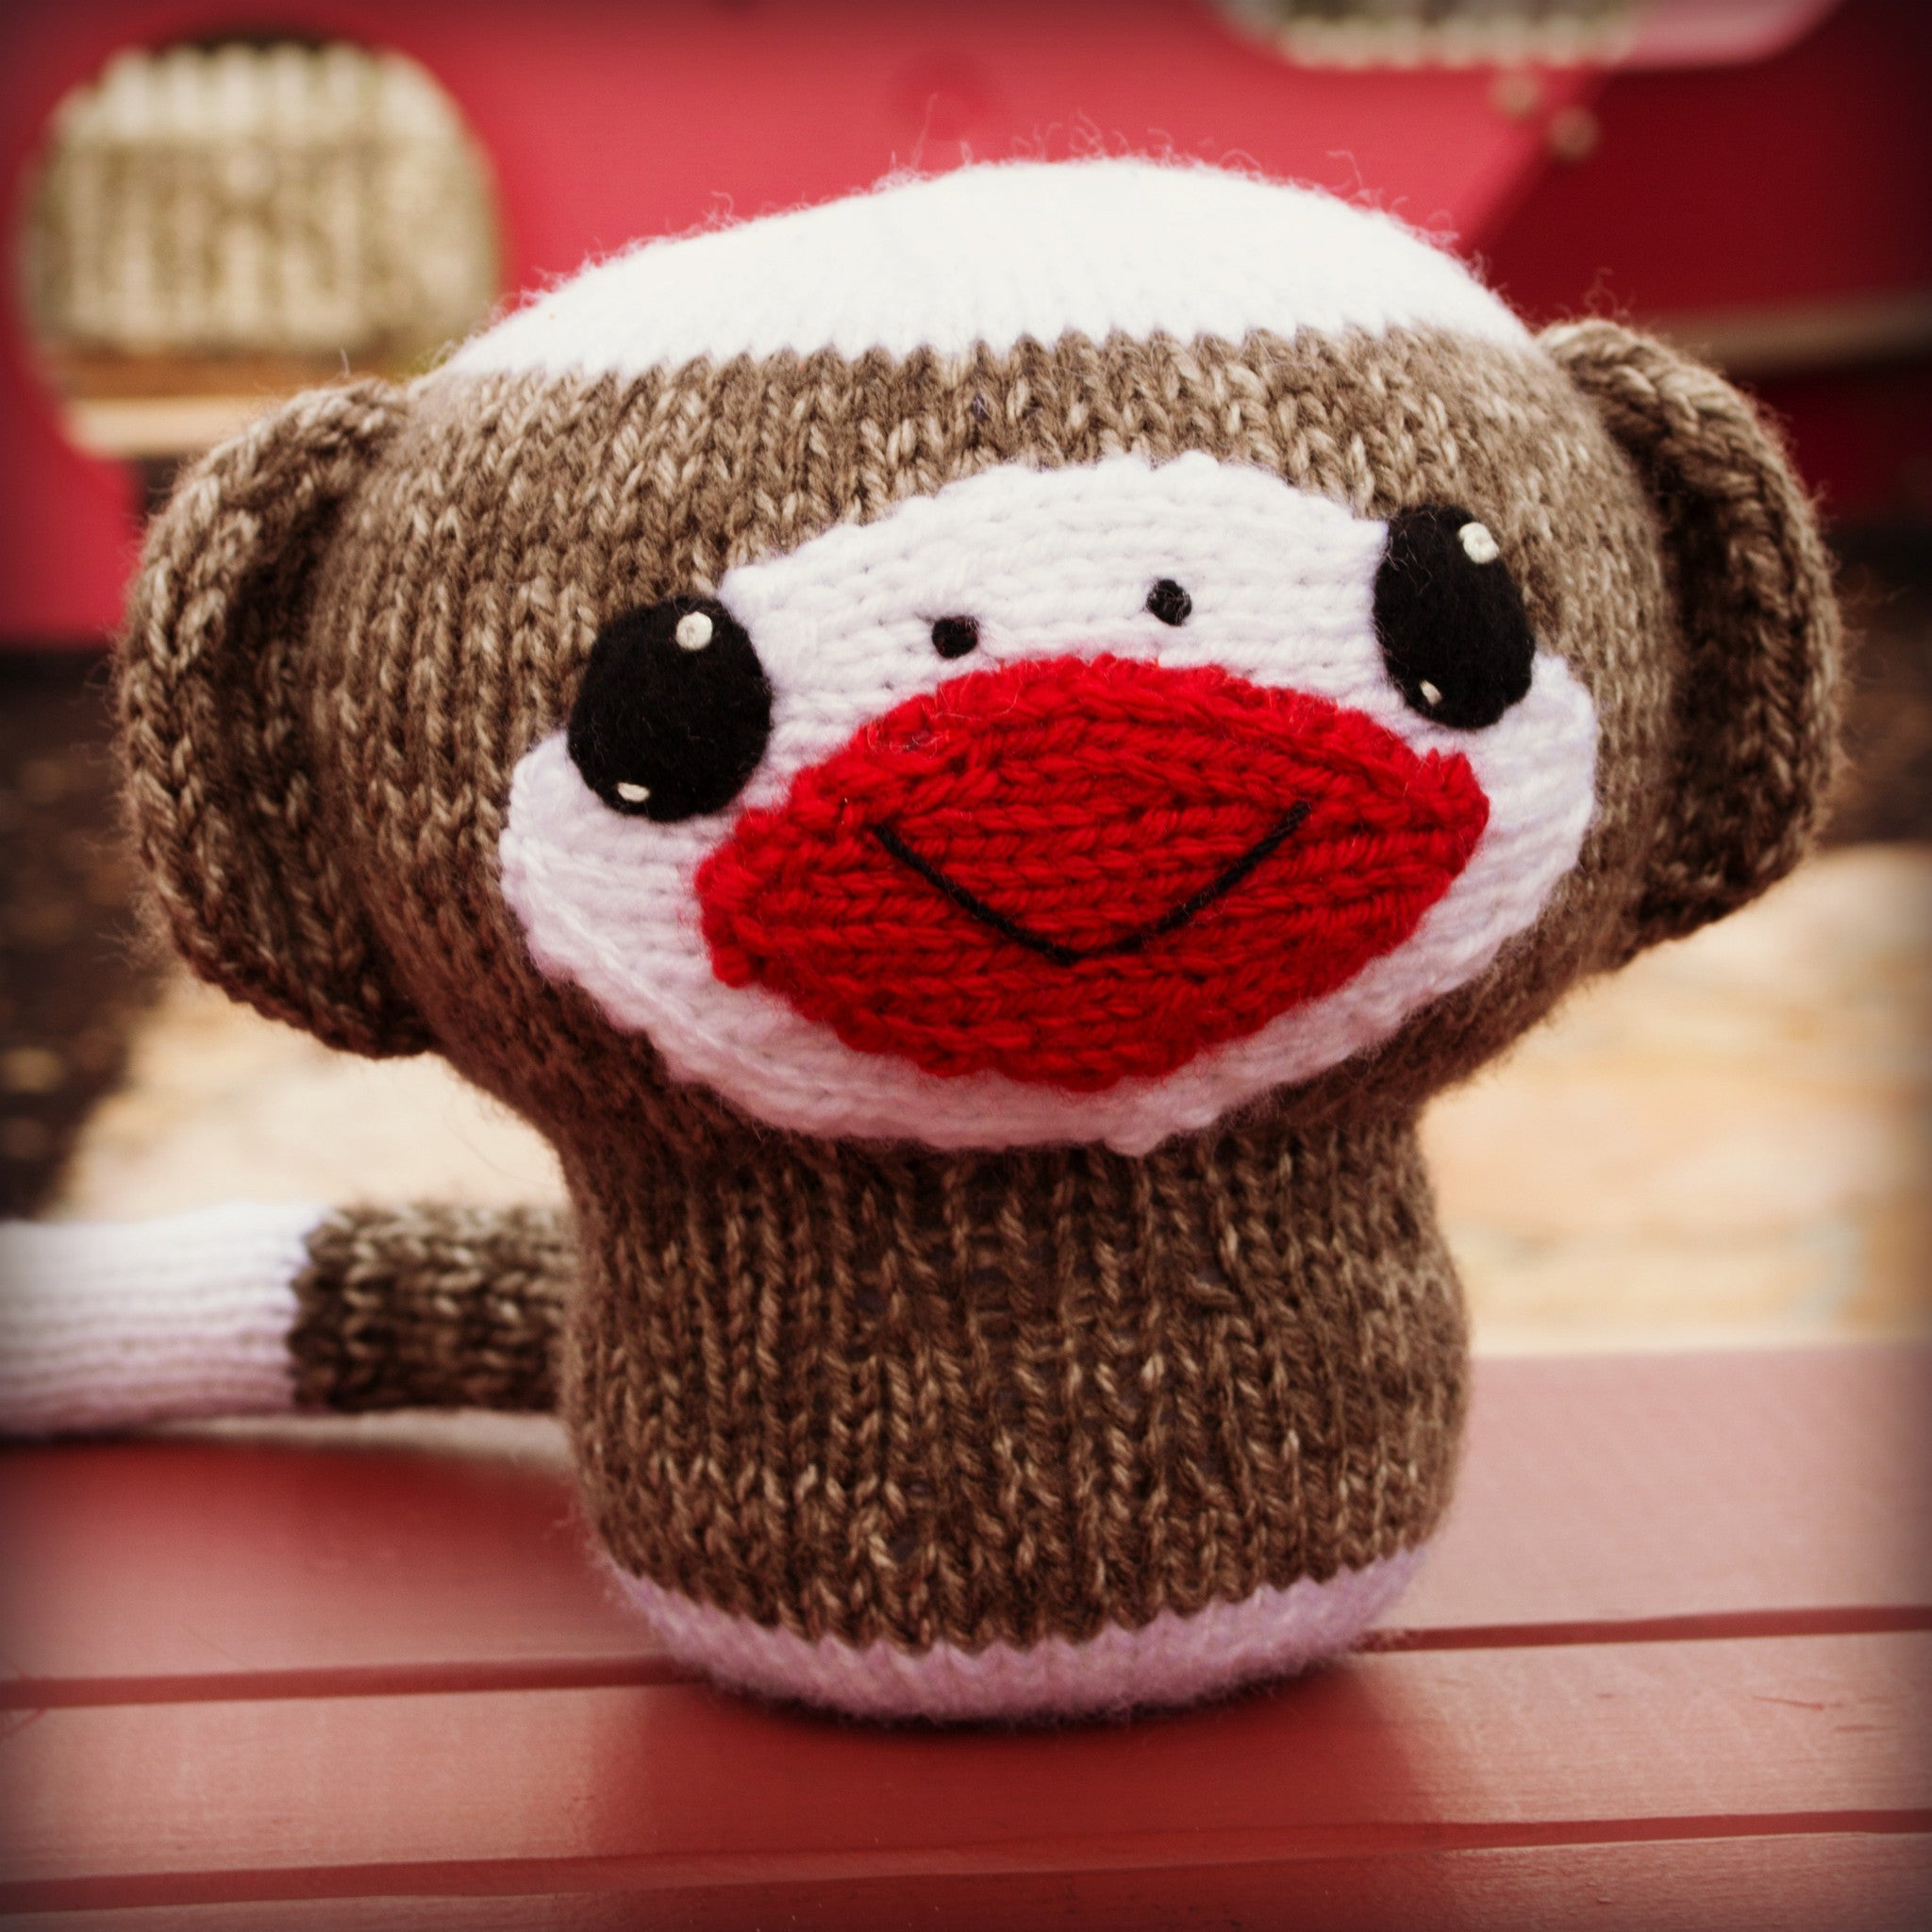 Knit Amigurumi Sock Monkey Pattern, 8 inch - CraftyAlien.com